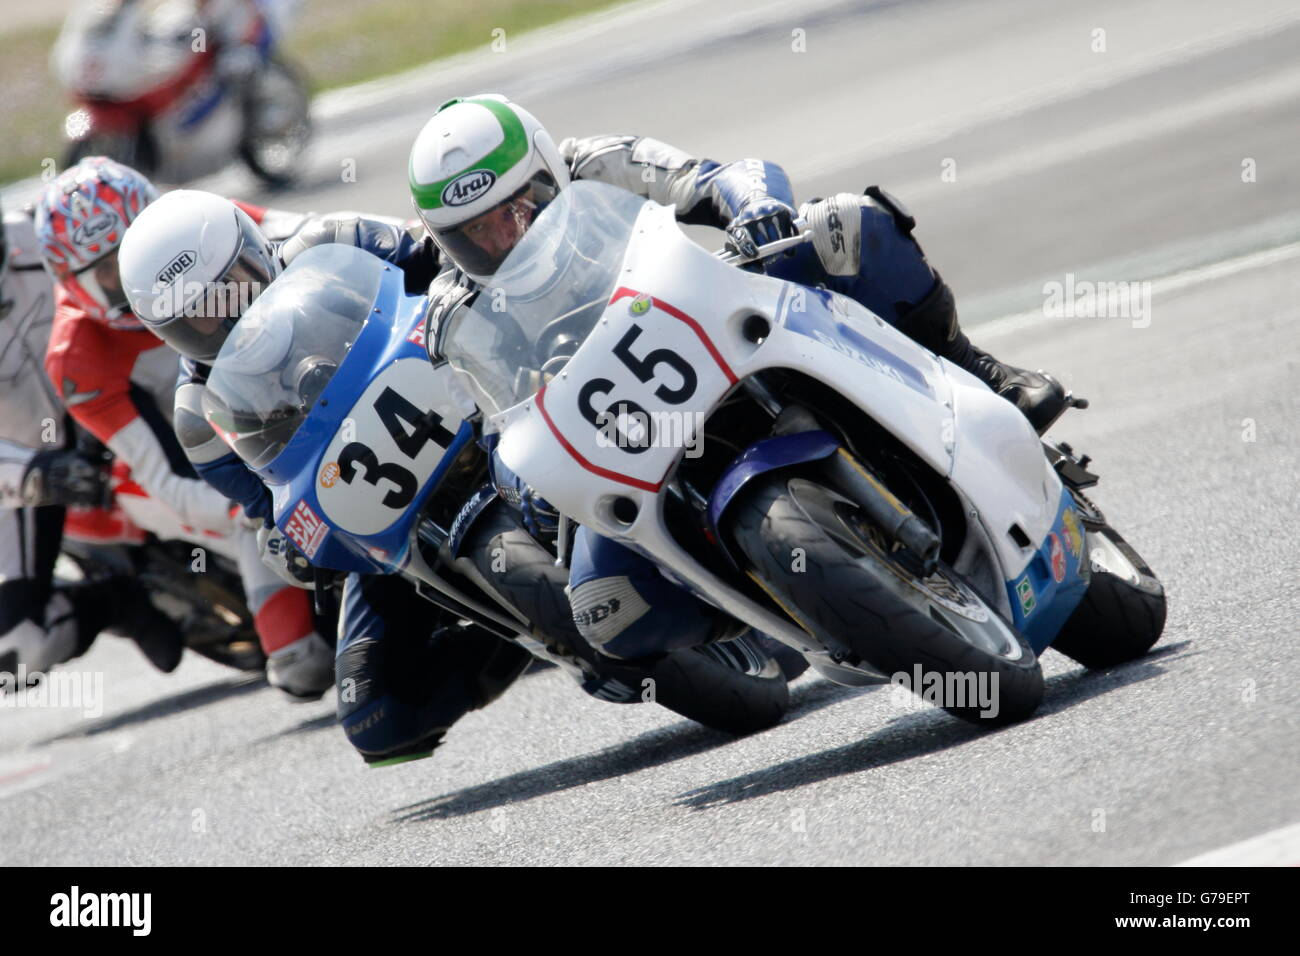 Barcelona, Spain. 26th June, 2016. ARENAS MAÑE, MODEST, motor bike number 65 in action during the Classics - Stock Image